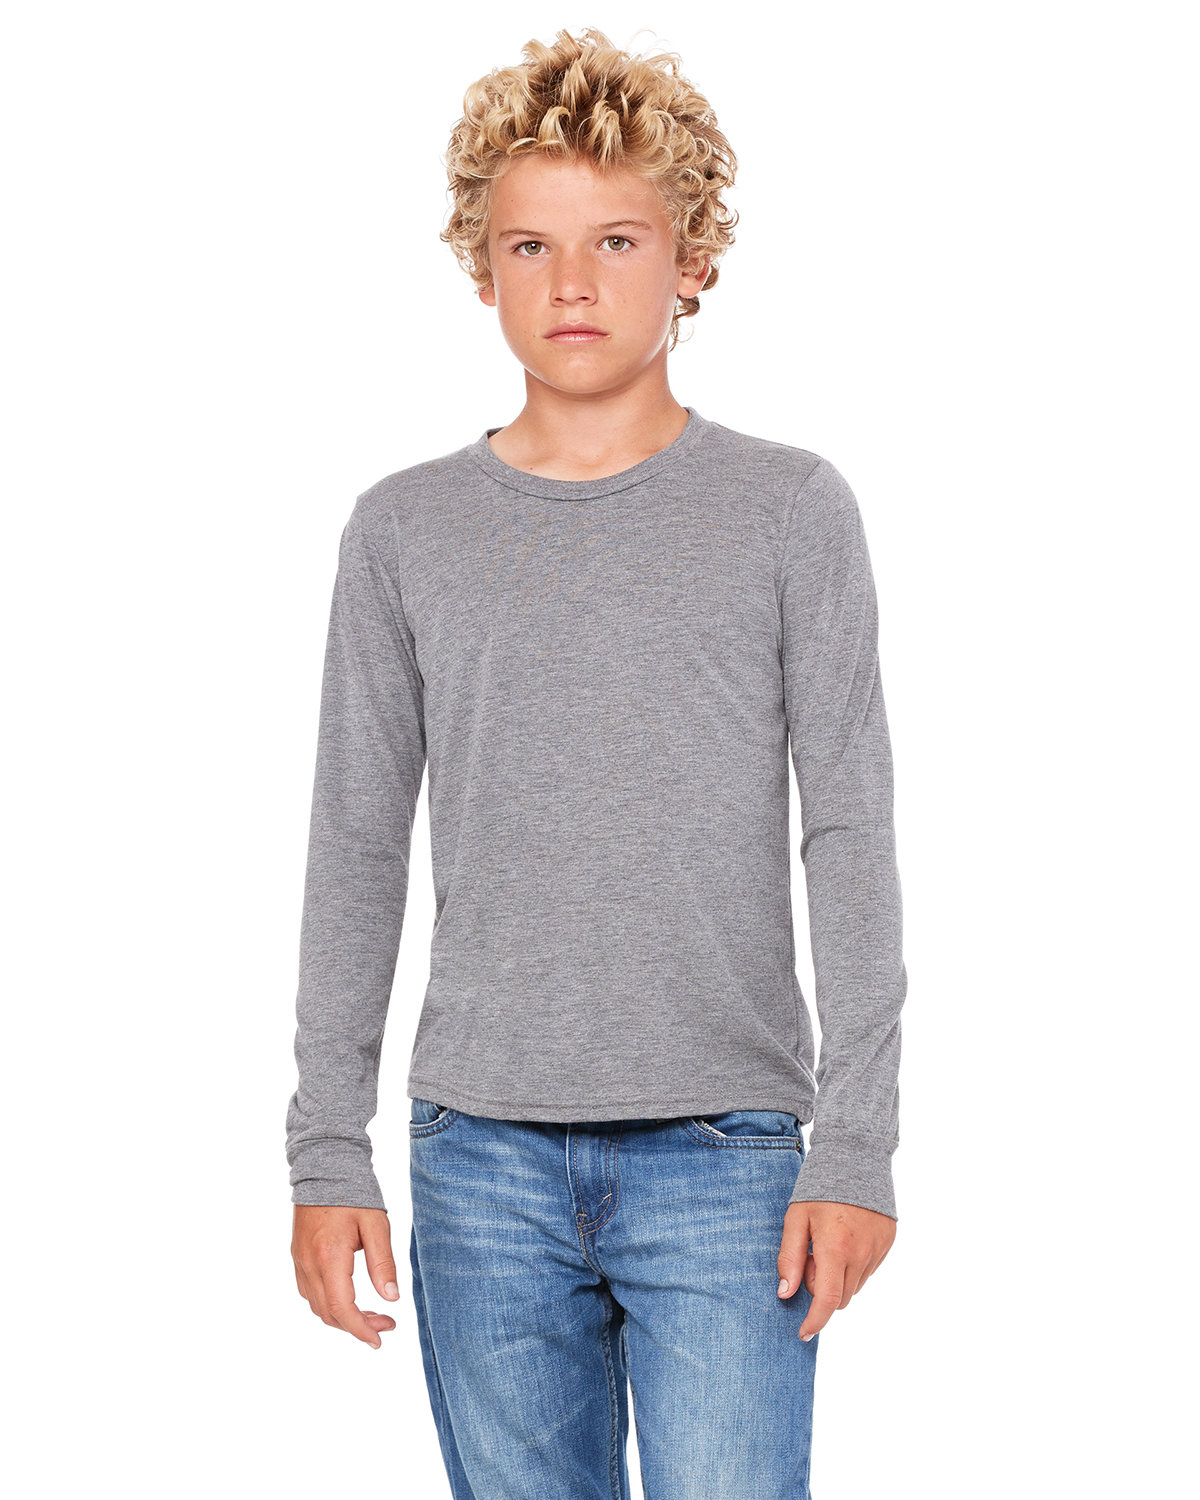 Bella + Canvas Youth Jersey Long-Sleeve T-Shirt GREY TRIBLEND